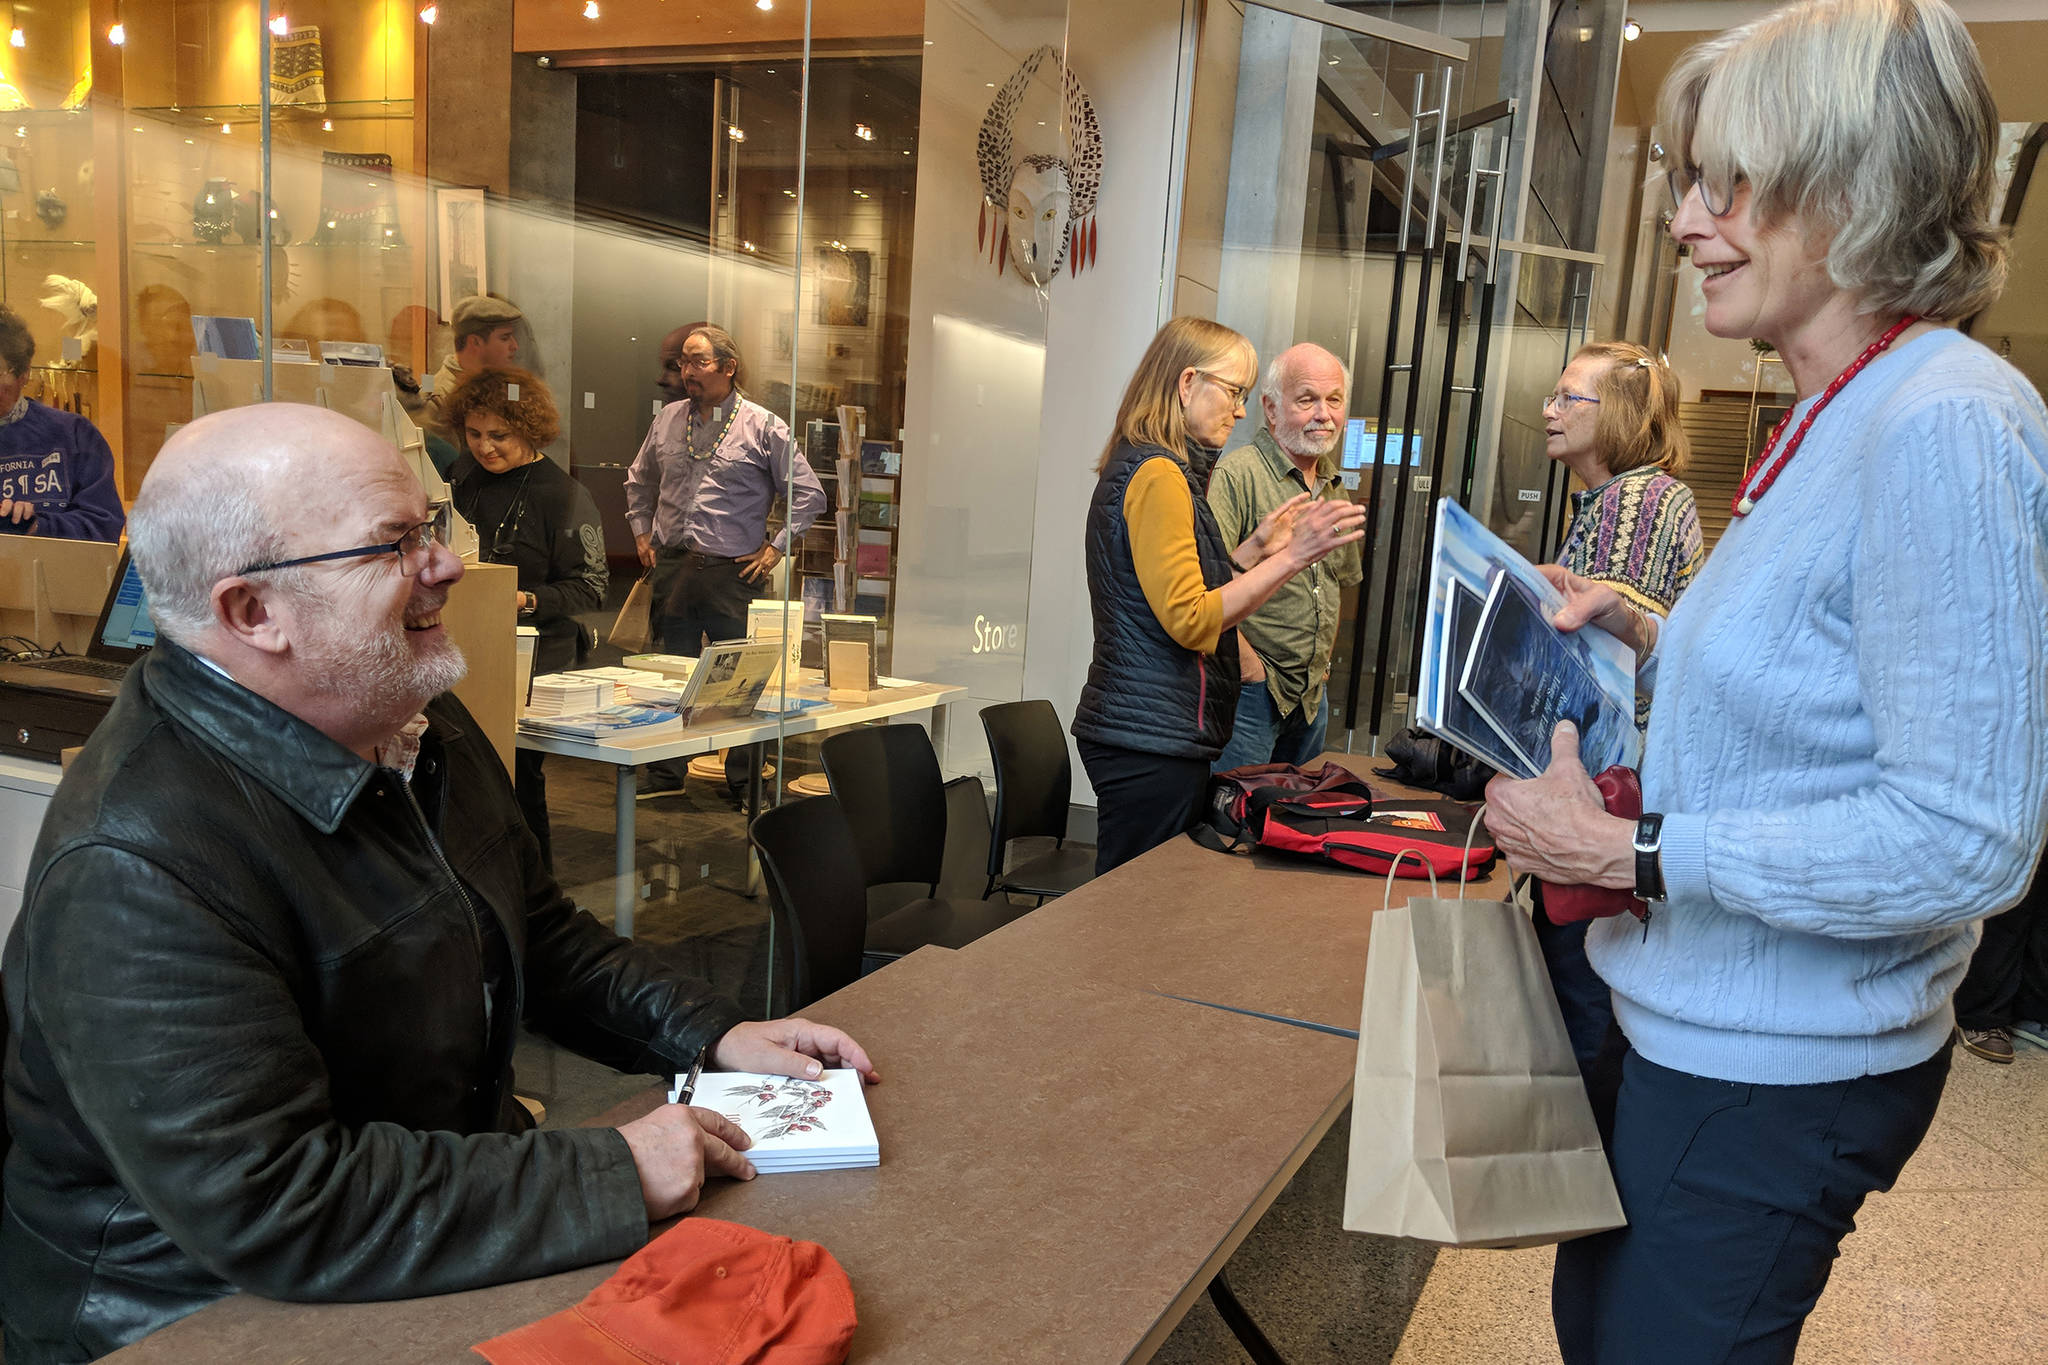 Author John Straley prepares to sign a book for author Heather Lende after the Alaska Literary Festival at the Father Andrew P. Kashevaroff building. They were both speakers at the event. (Ben Hohenstatt | Capital City Weekly)